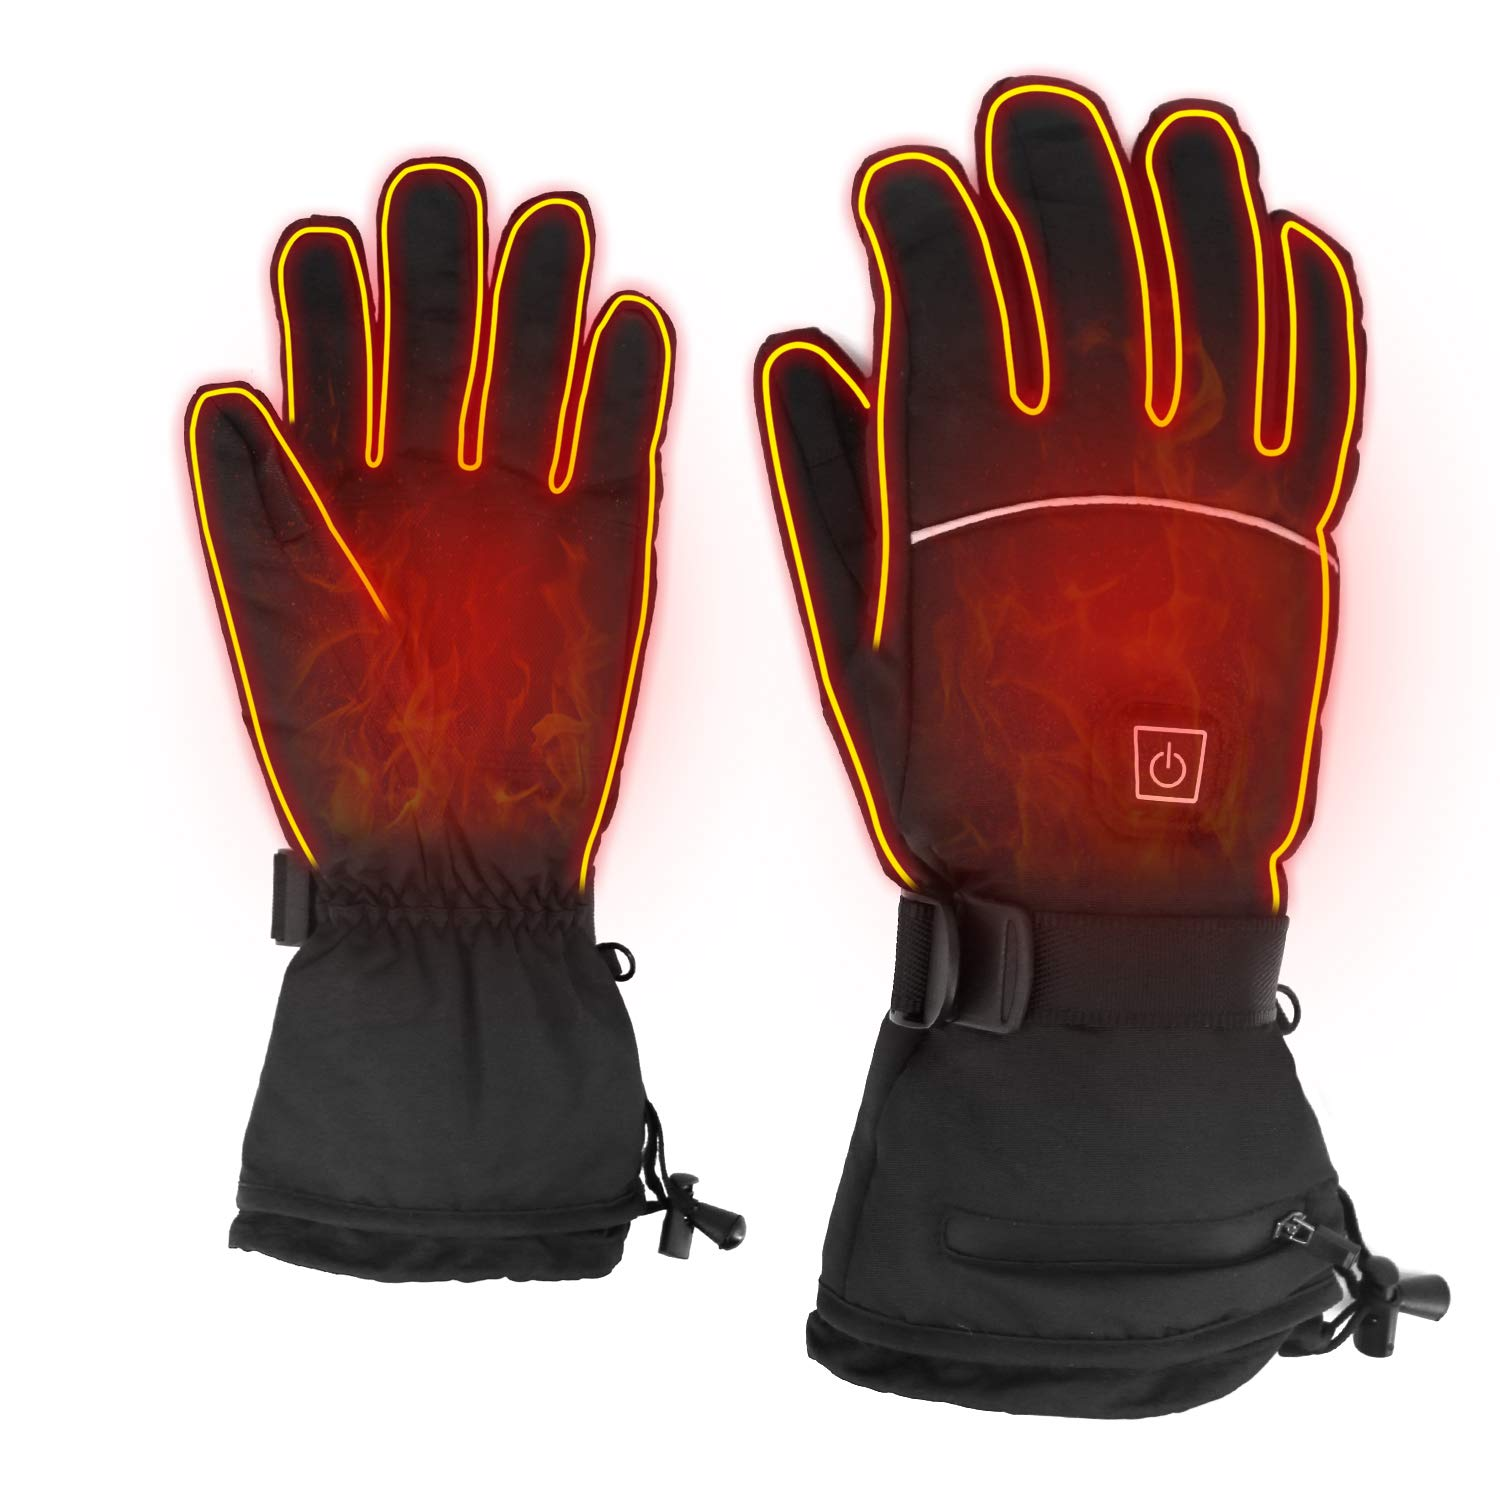 PLYFUNS Heated Gloves,3 Adjustable Heating Temperature Electric Gloves for Men Women Waterproof Gloves for Hiking, Fishing, Skiing, Camping, Winter Outdoor Sports